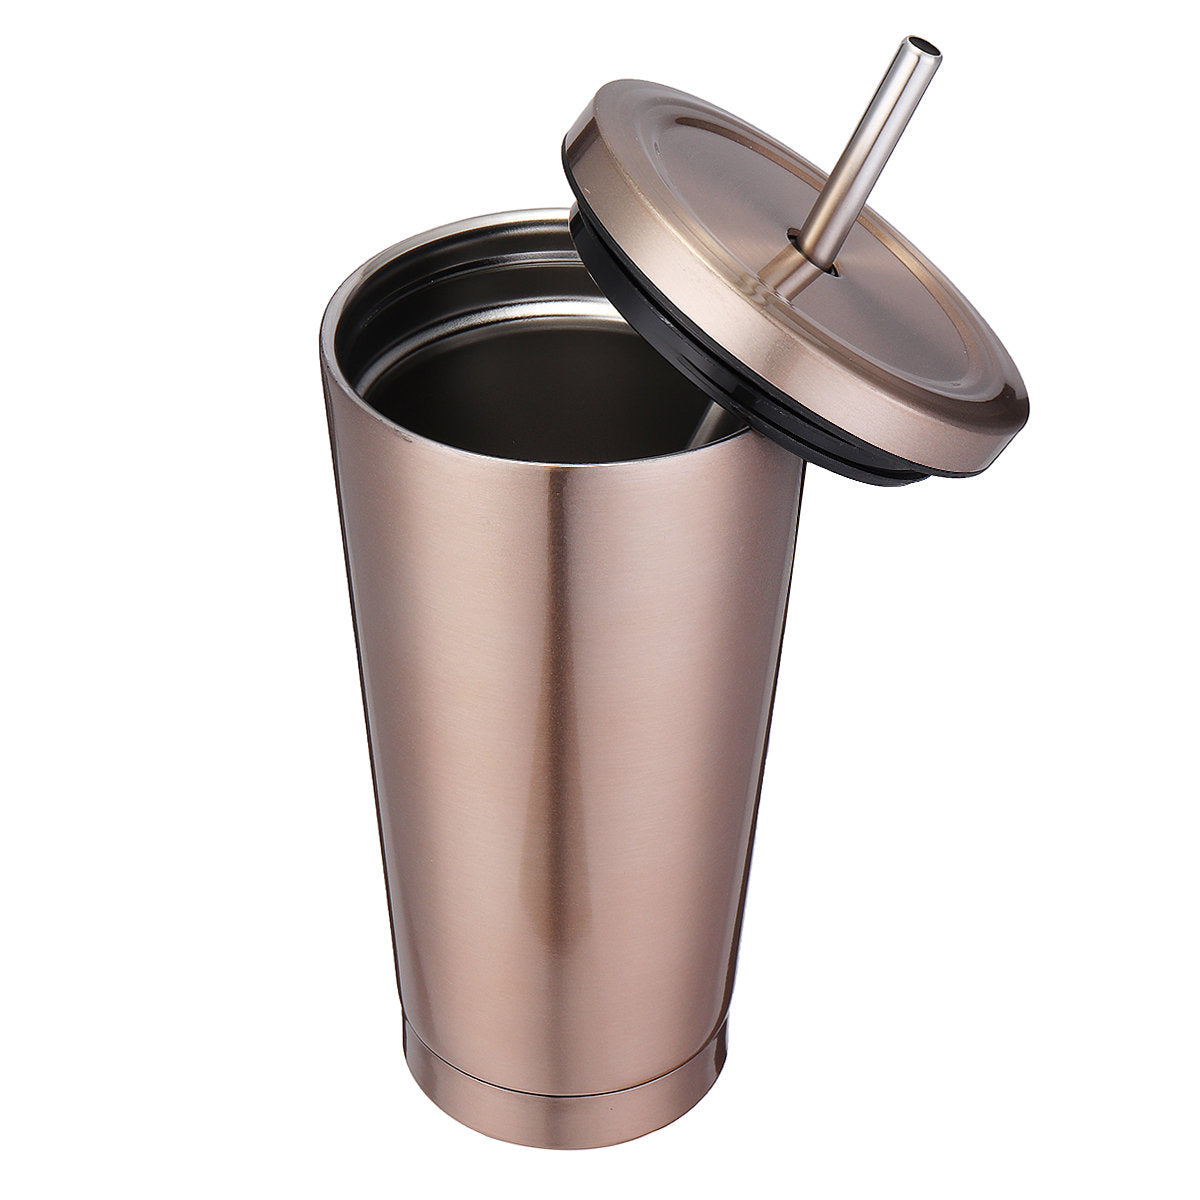 500ml Stainless Steel Mug Portable Home And Office Tumbler Coffee Ice Cup With Drinking Straw